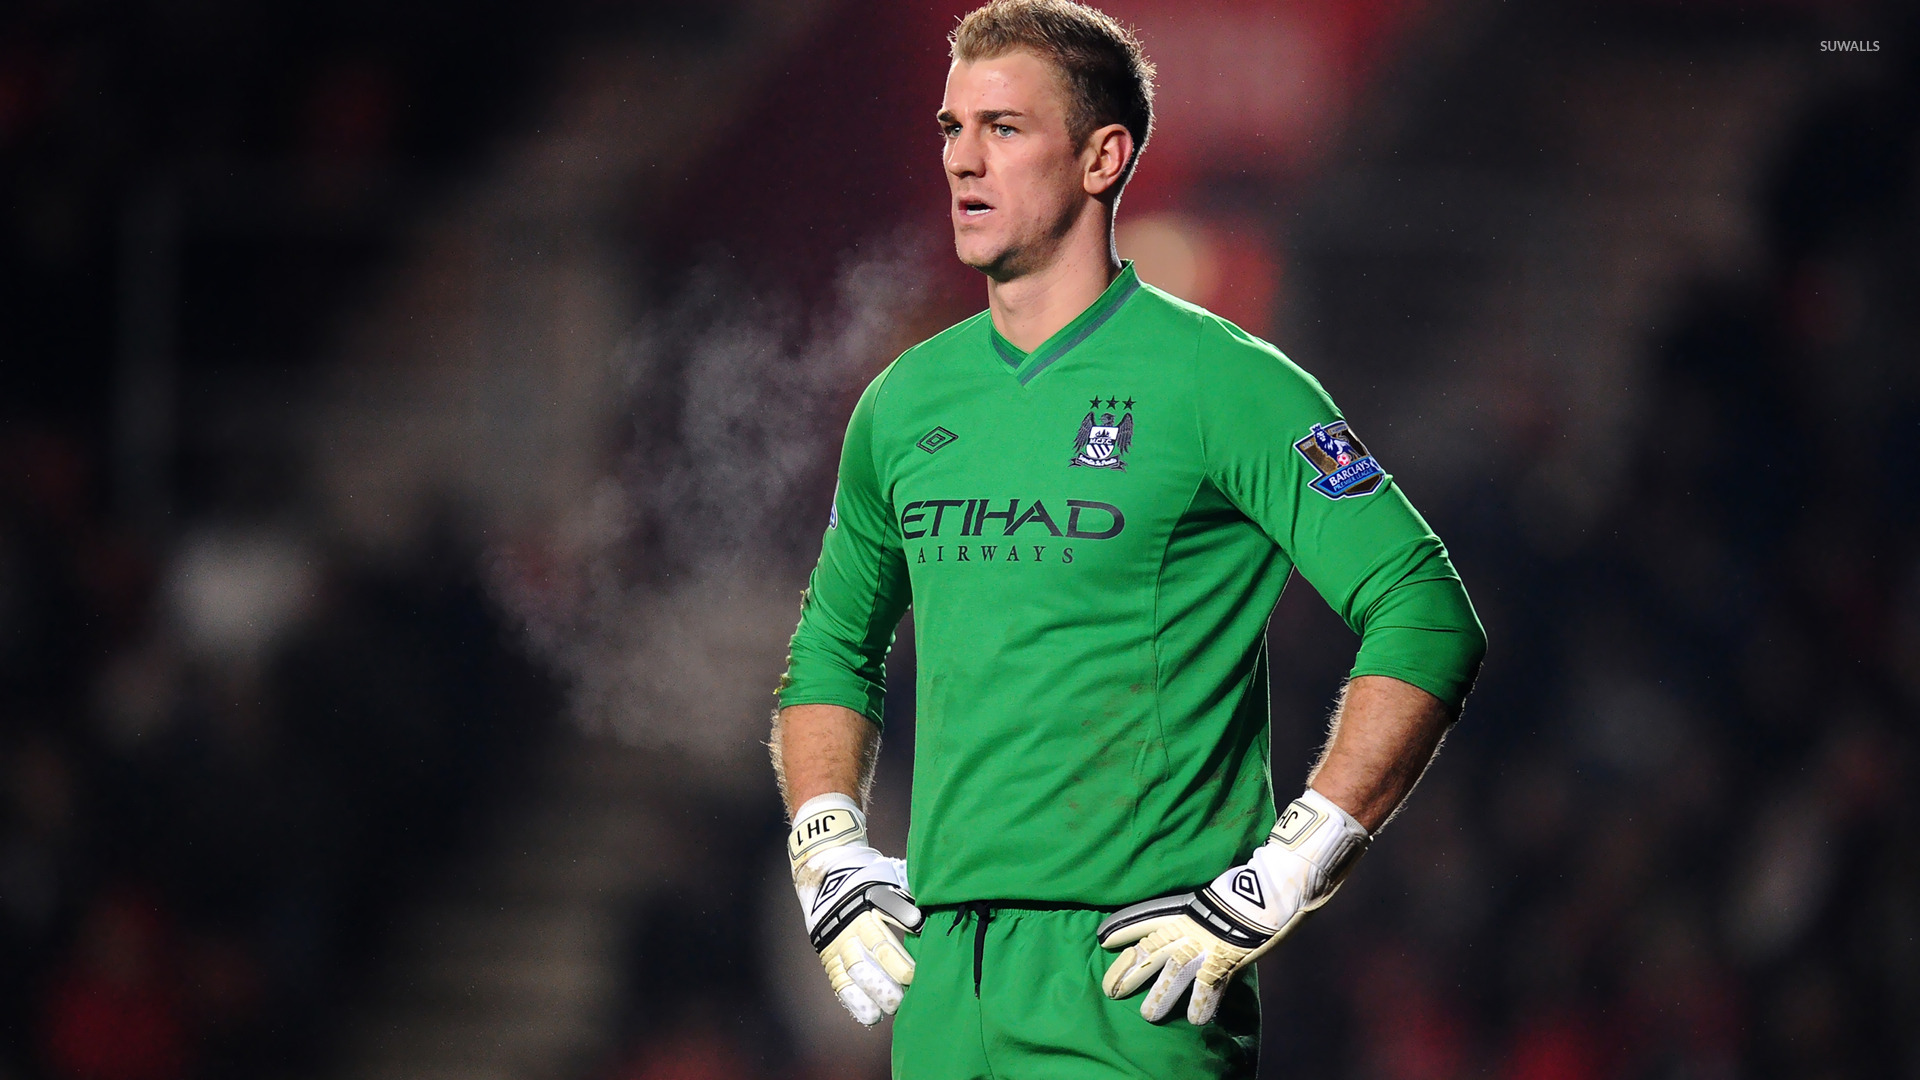 Joe Hart [2] Wallpaper Jpg Joe Hart Manchester United